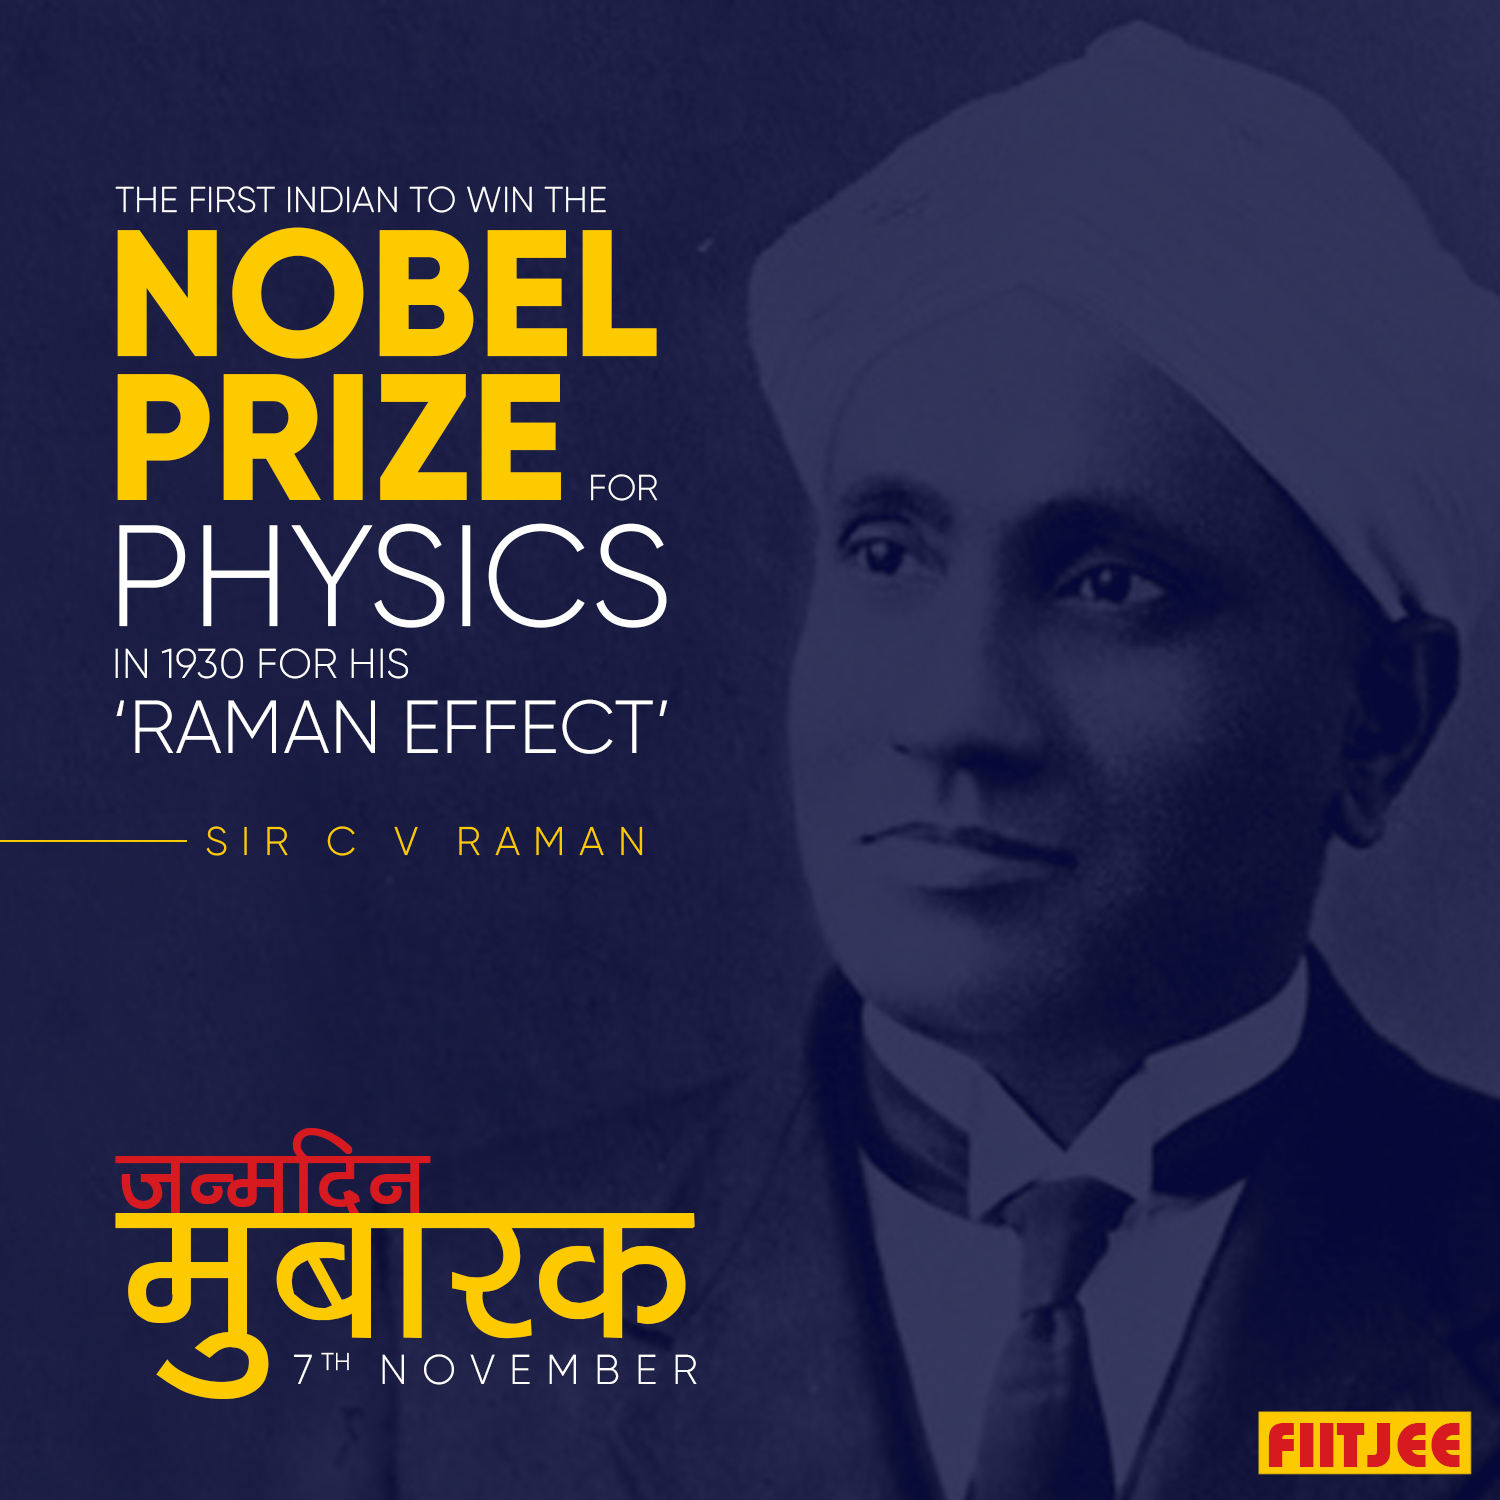 Remembering the Great Indian Physicist Sir C.V. Raman on